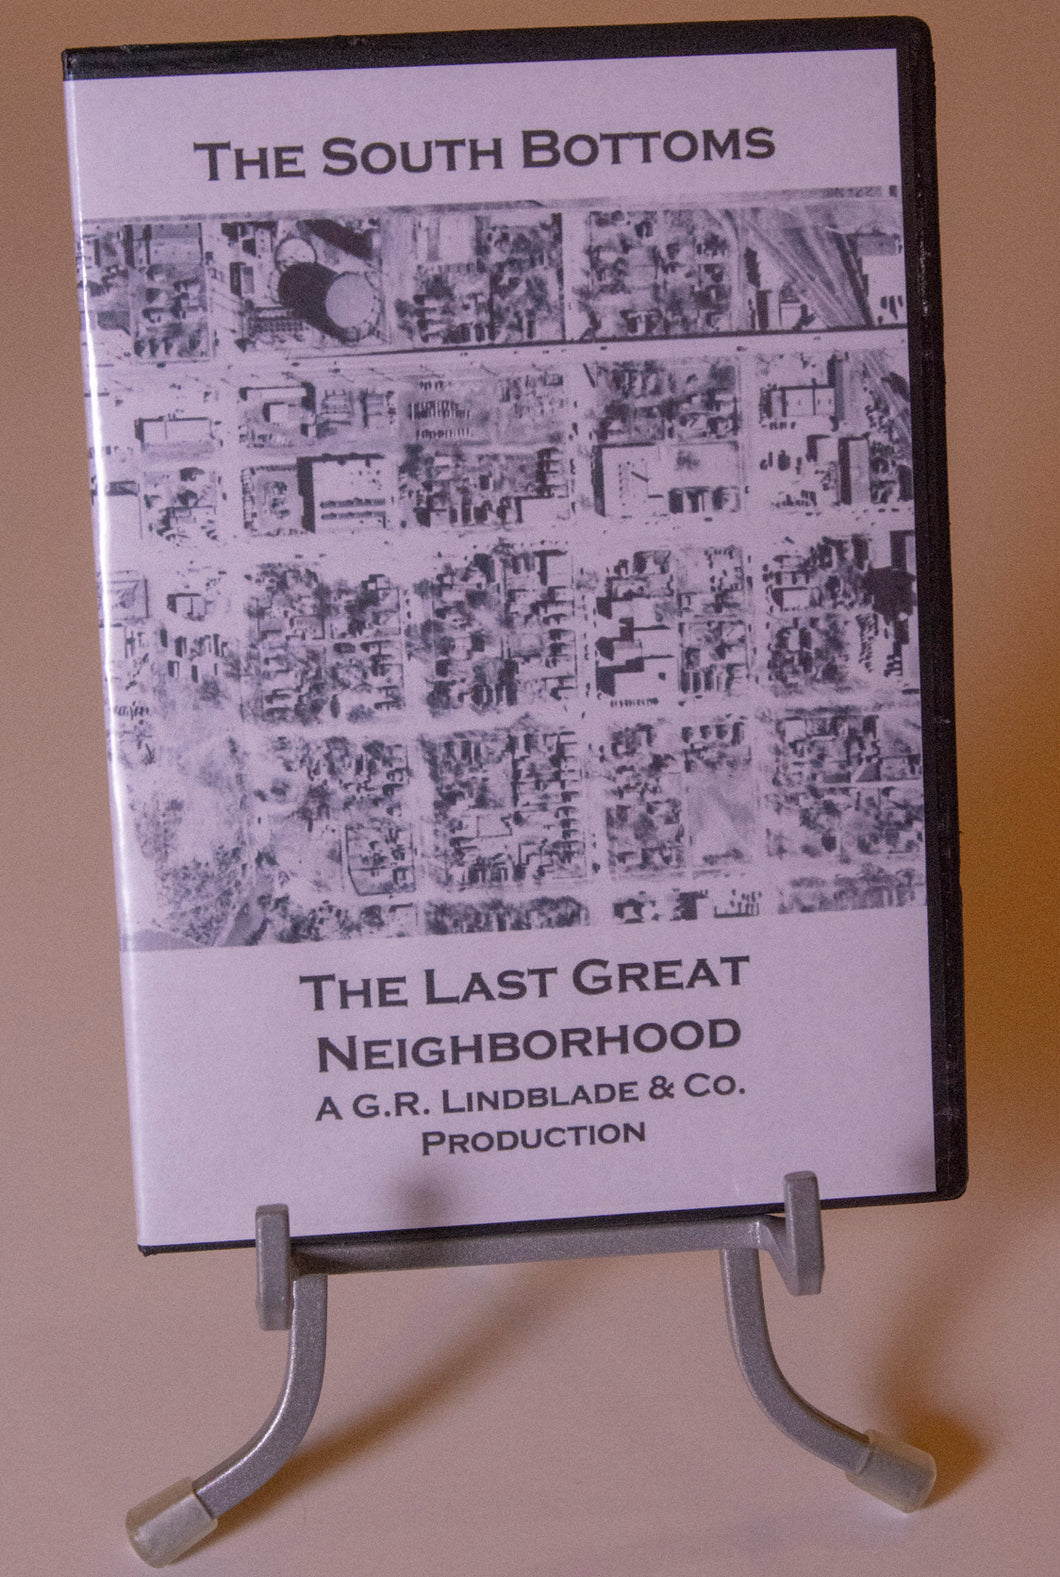 The South Bottoms, the Last Great Neighborhood DVD